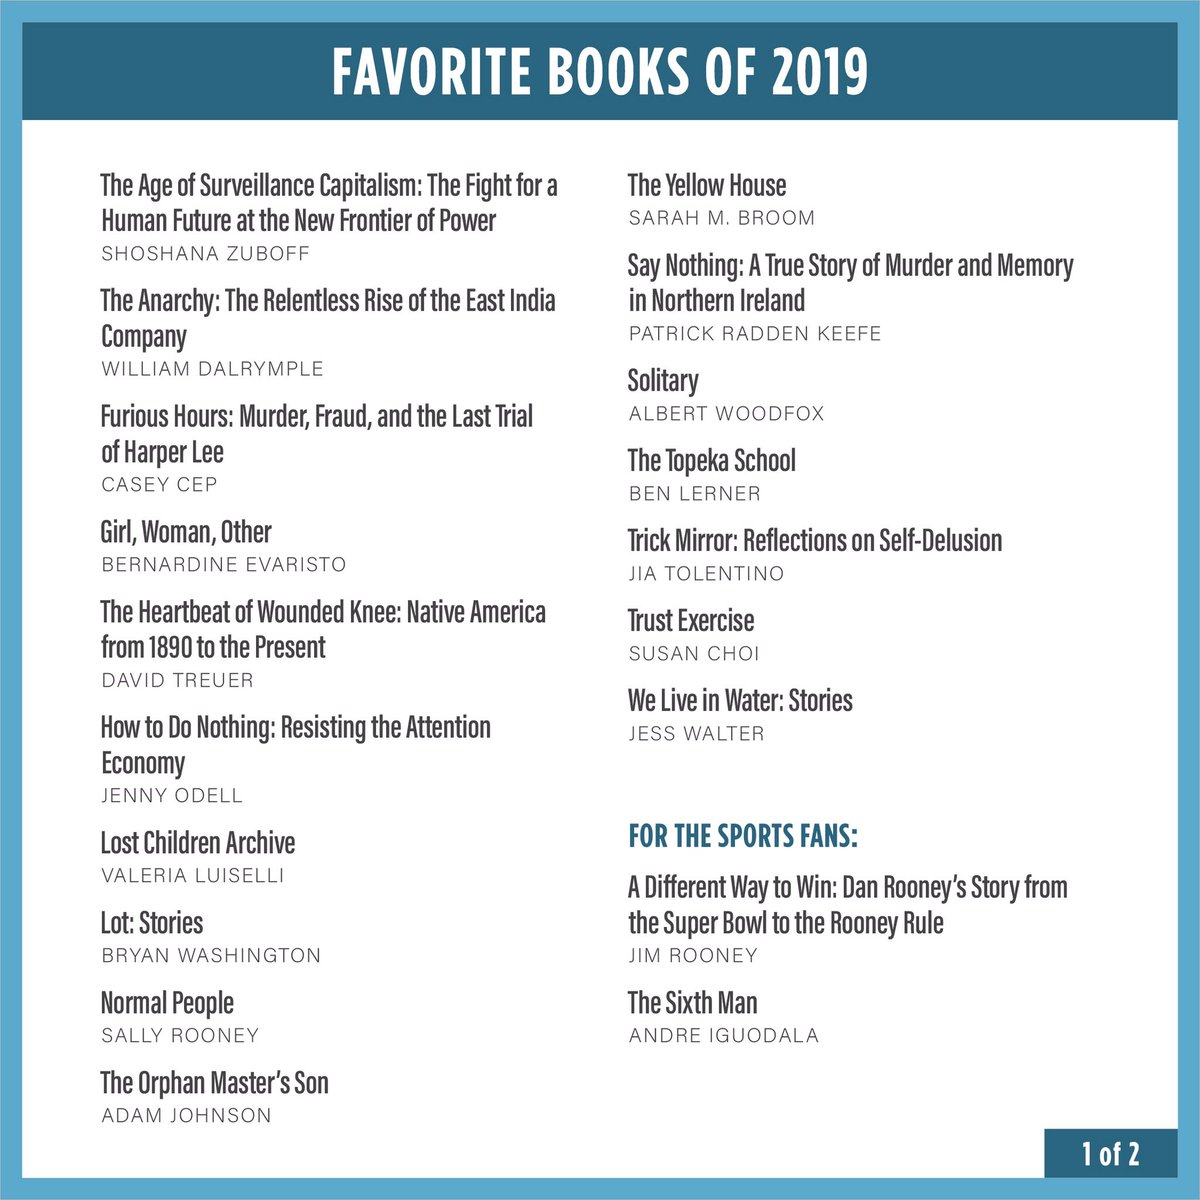 As we wind down 2019, I wanted to share with you my annual list of favorites that made the last year a little brighter. We'll start with books today — movies and music coming soon. I hope you enjoy these as much as I did.